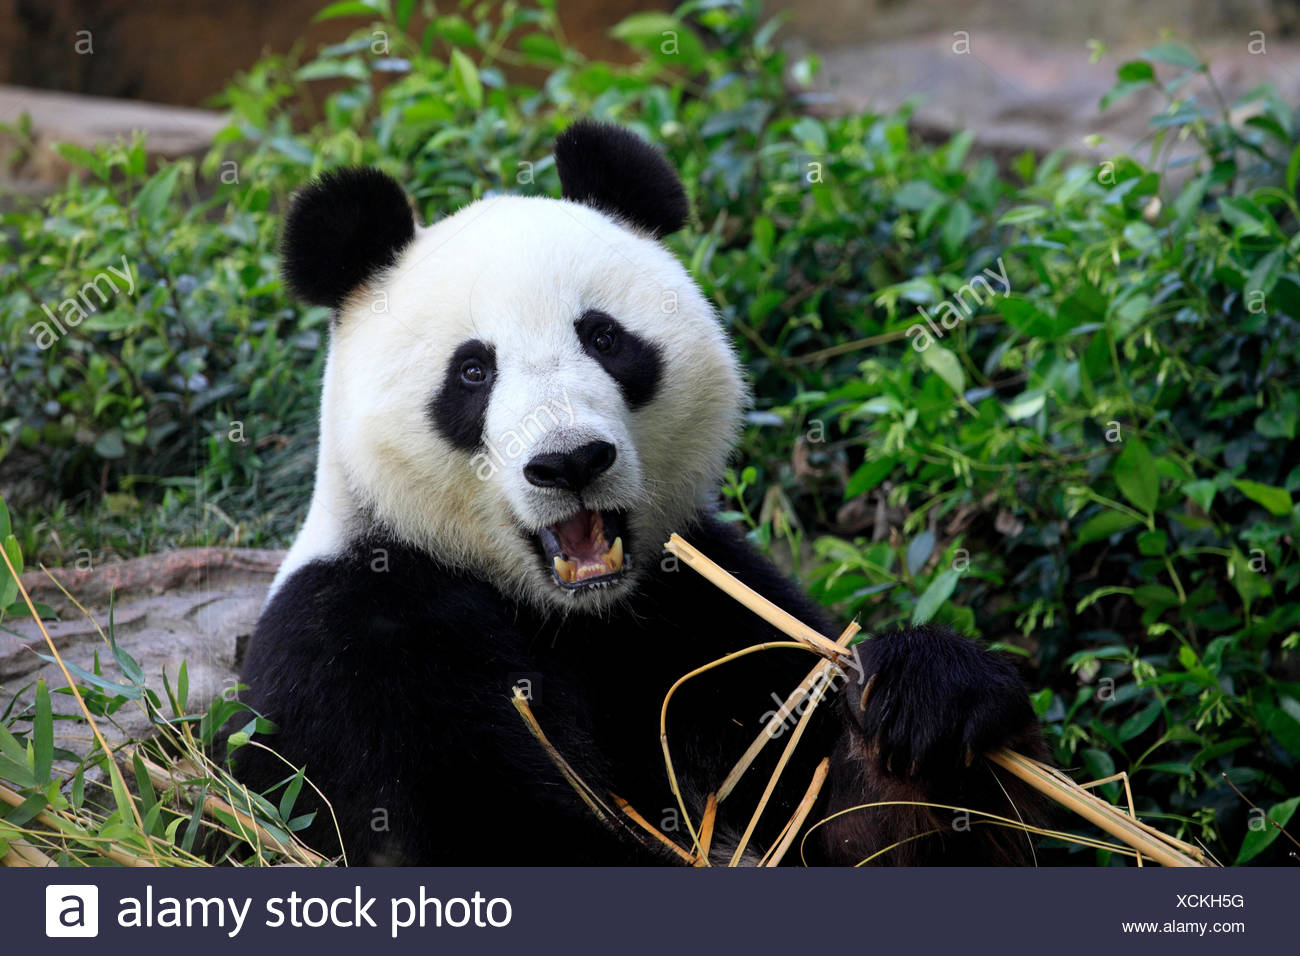 Giant Panda, Asia / (Ailuropoda melanoleuca) Stock Photo